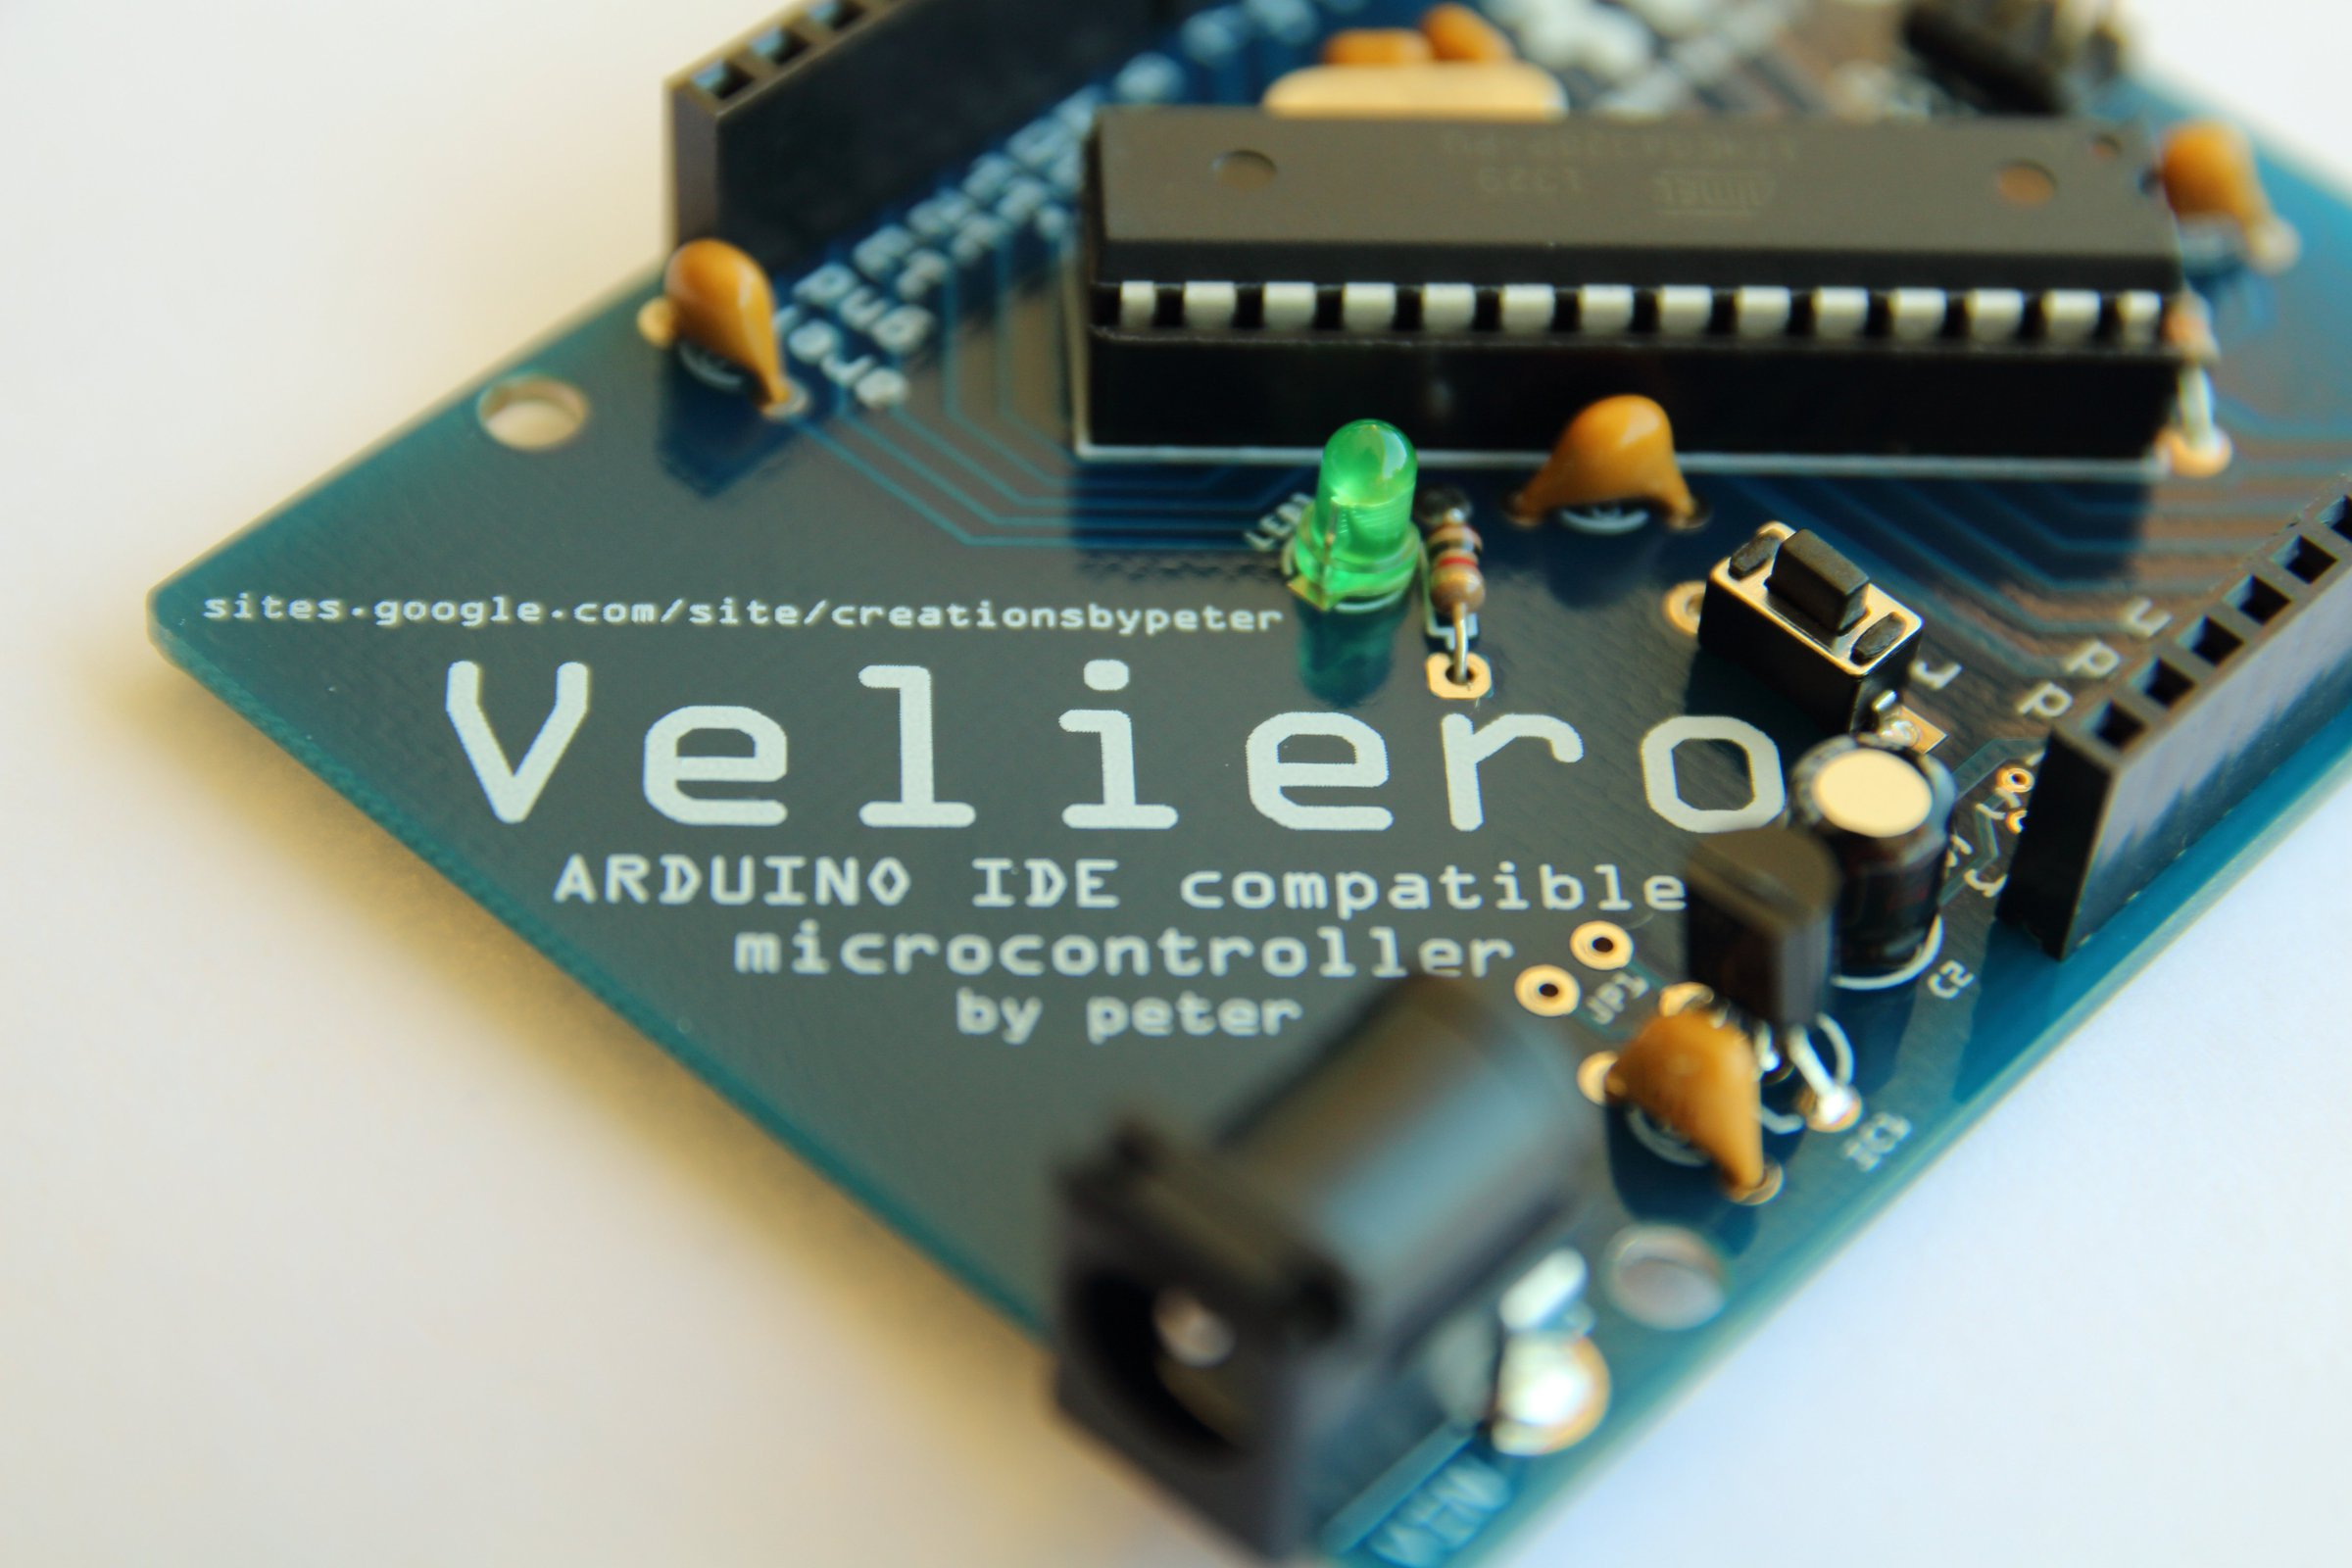 Veliero Open Arduino Compatible Microcontroller From Isp In System Programming And Standalone Circuits 1